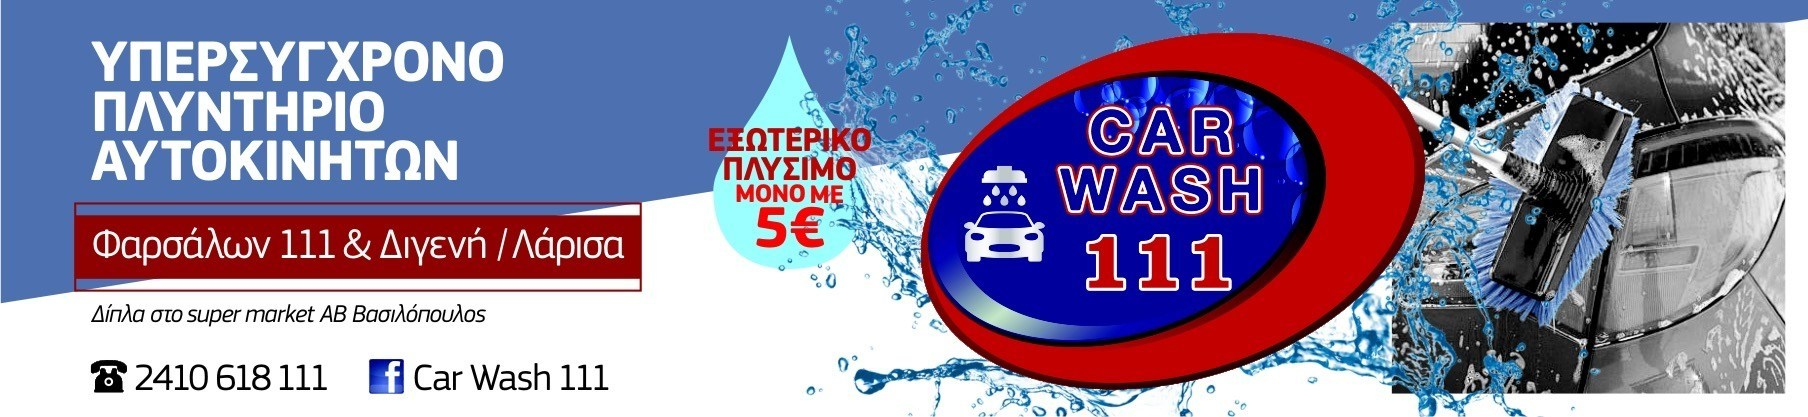 18/09/18 car wash Adam 111